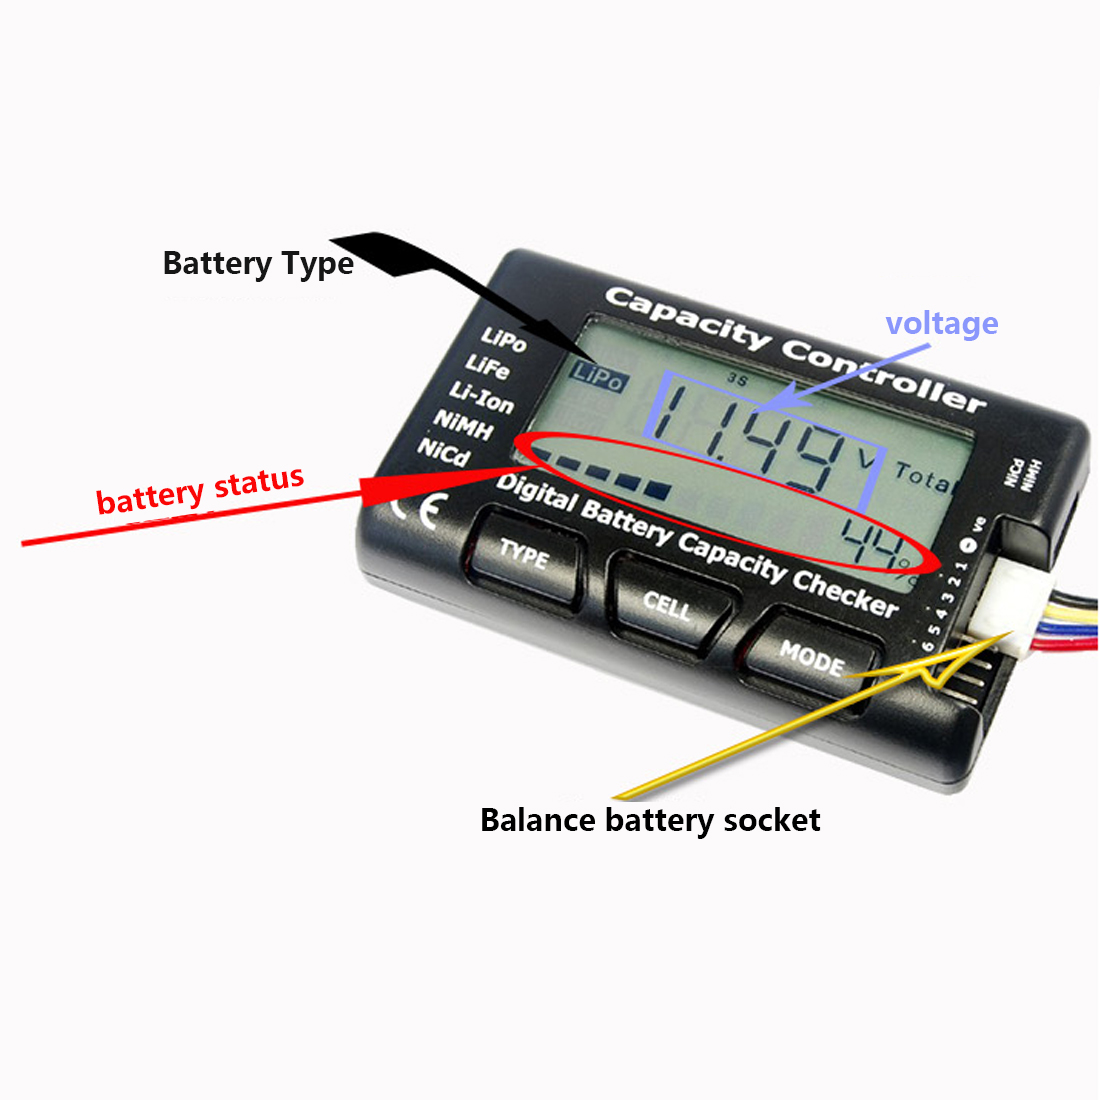 Brand New RC CellMeter-7 Digital Cell Battery Capacity Checker For LiPo LiFe Li-ion Nicd NiMH Battery Voltage Tester Checking 1 55v and 3v button cell battery checker battery tester green